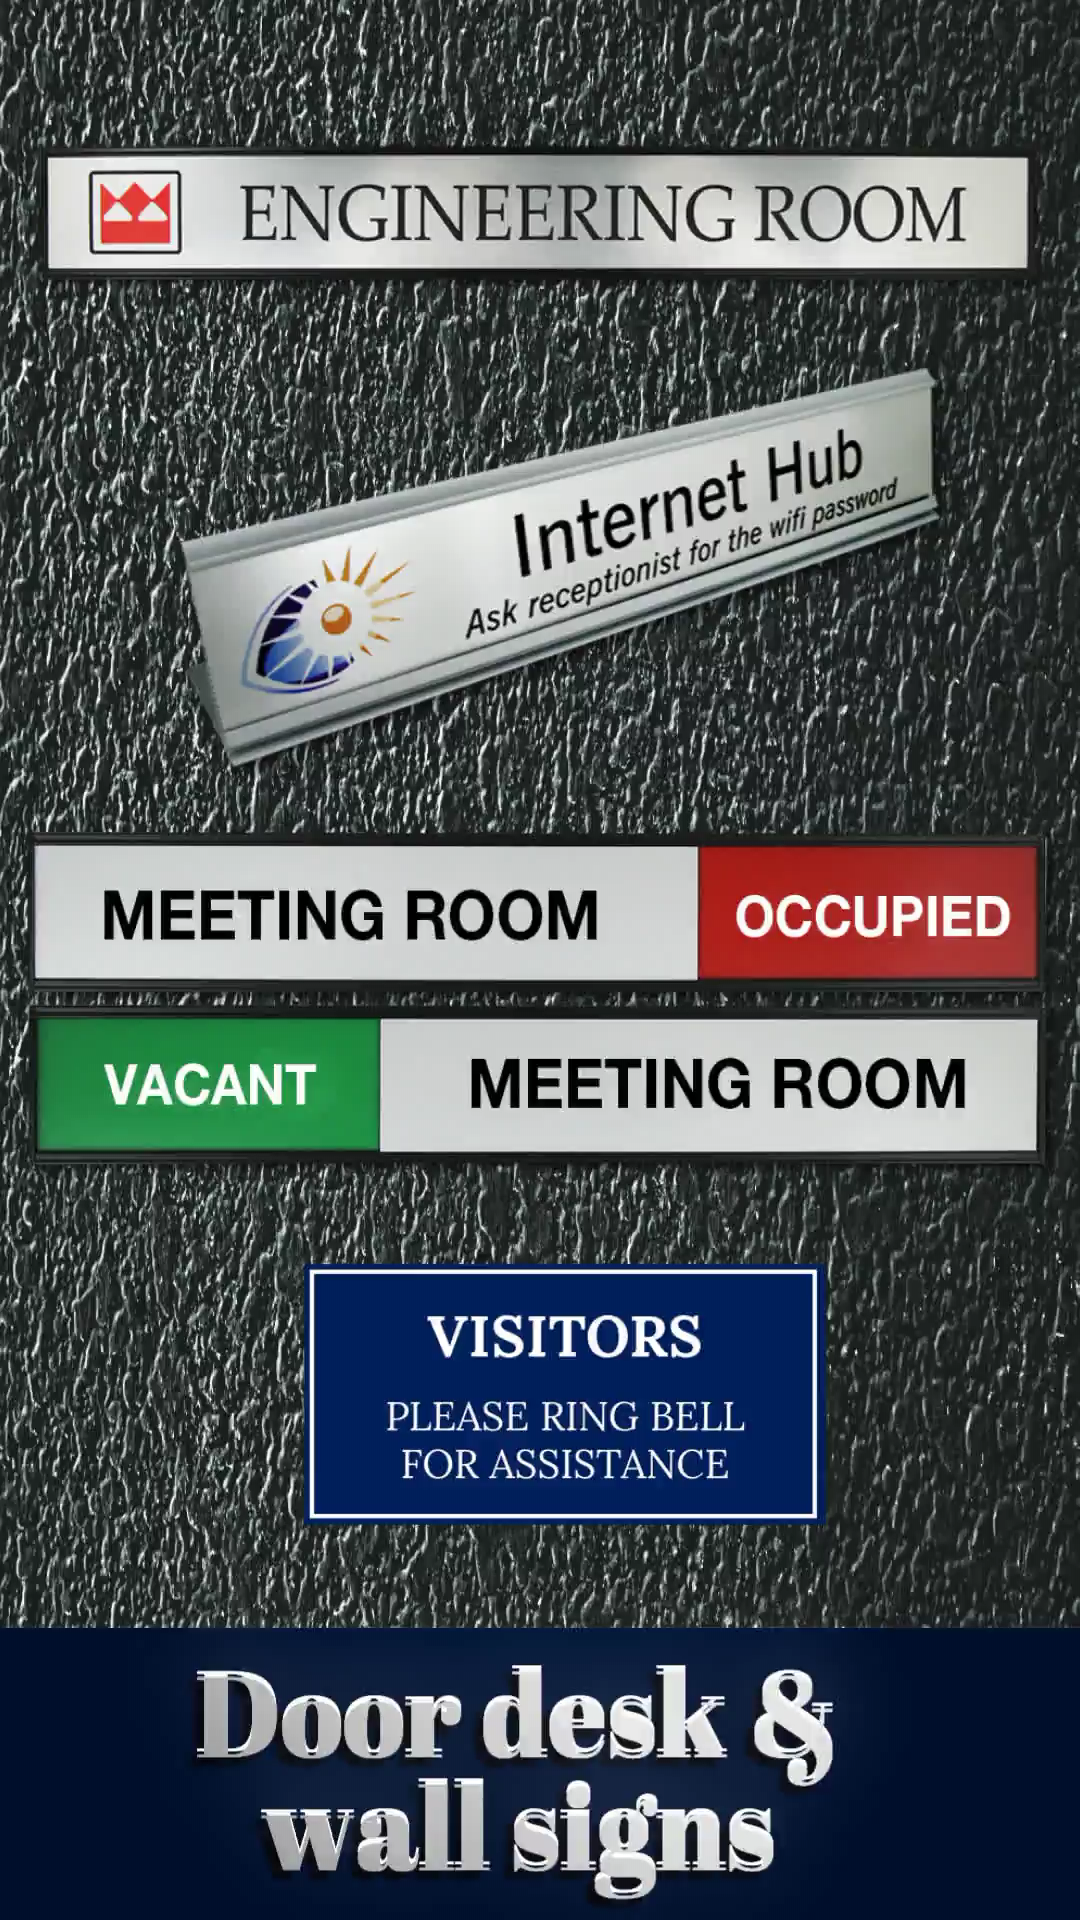 We Make It Easy To Order Office Door Wall And Desk Signs Request A Quote Www Smartedgebadges Com Au Quick Turnaround With An Easy Video Business Signs